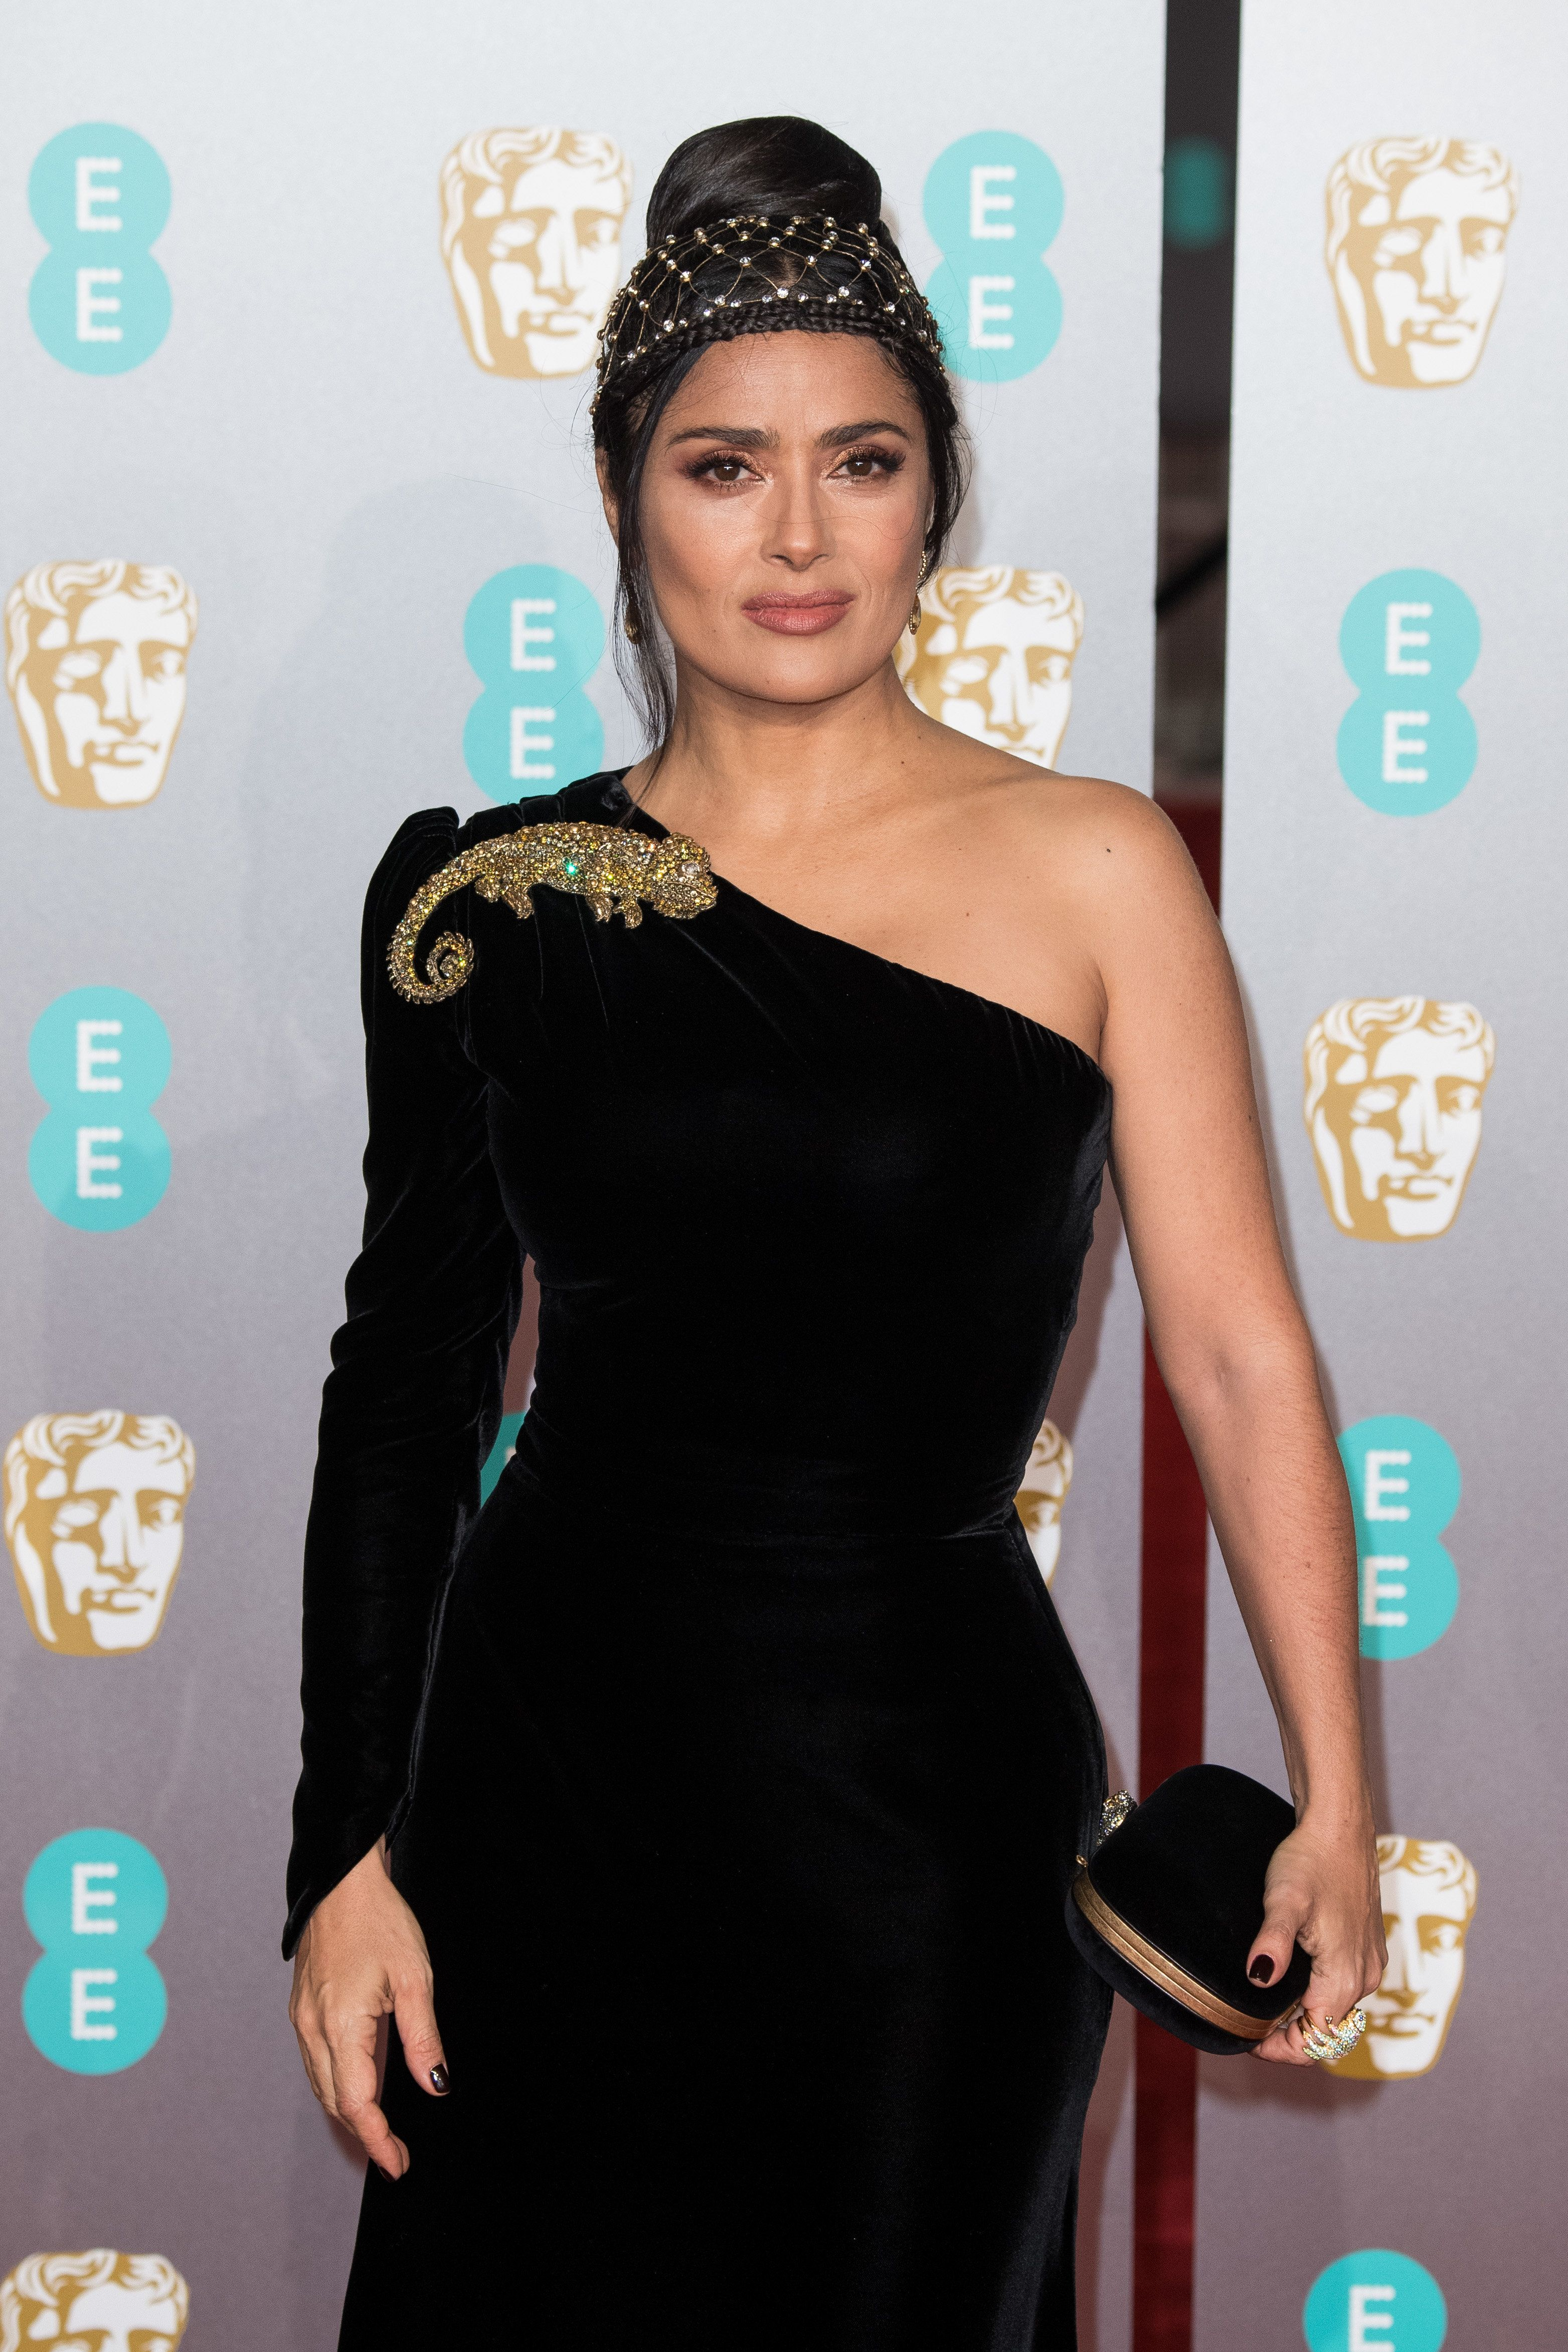 Salma Hayek's Lizard Brooch Caught Our Eye At The BAFTAs, Here's How To Shop The